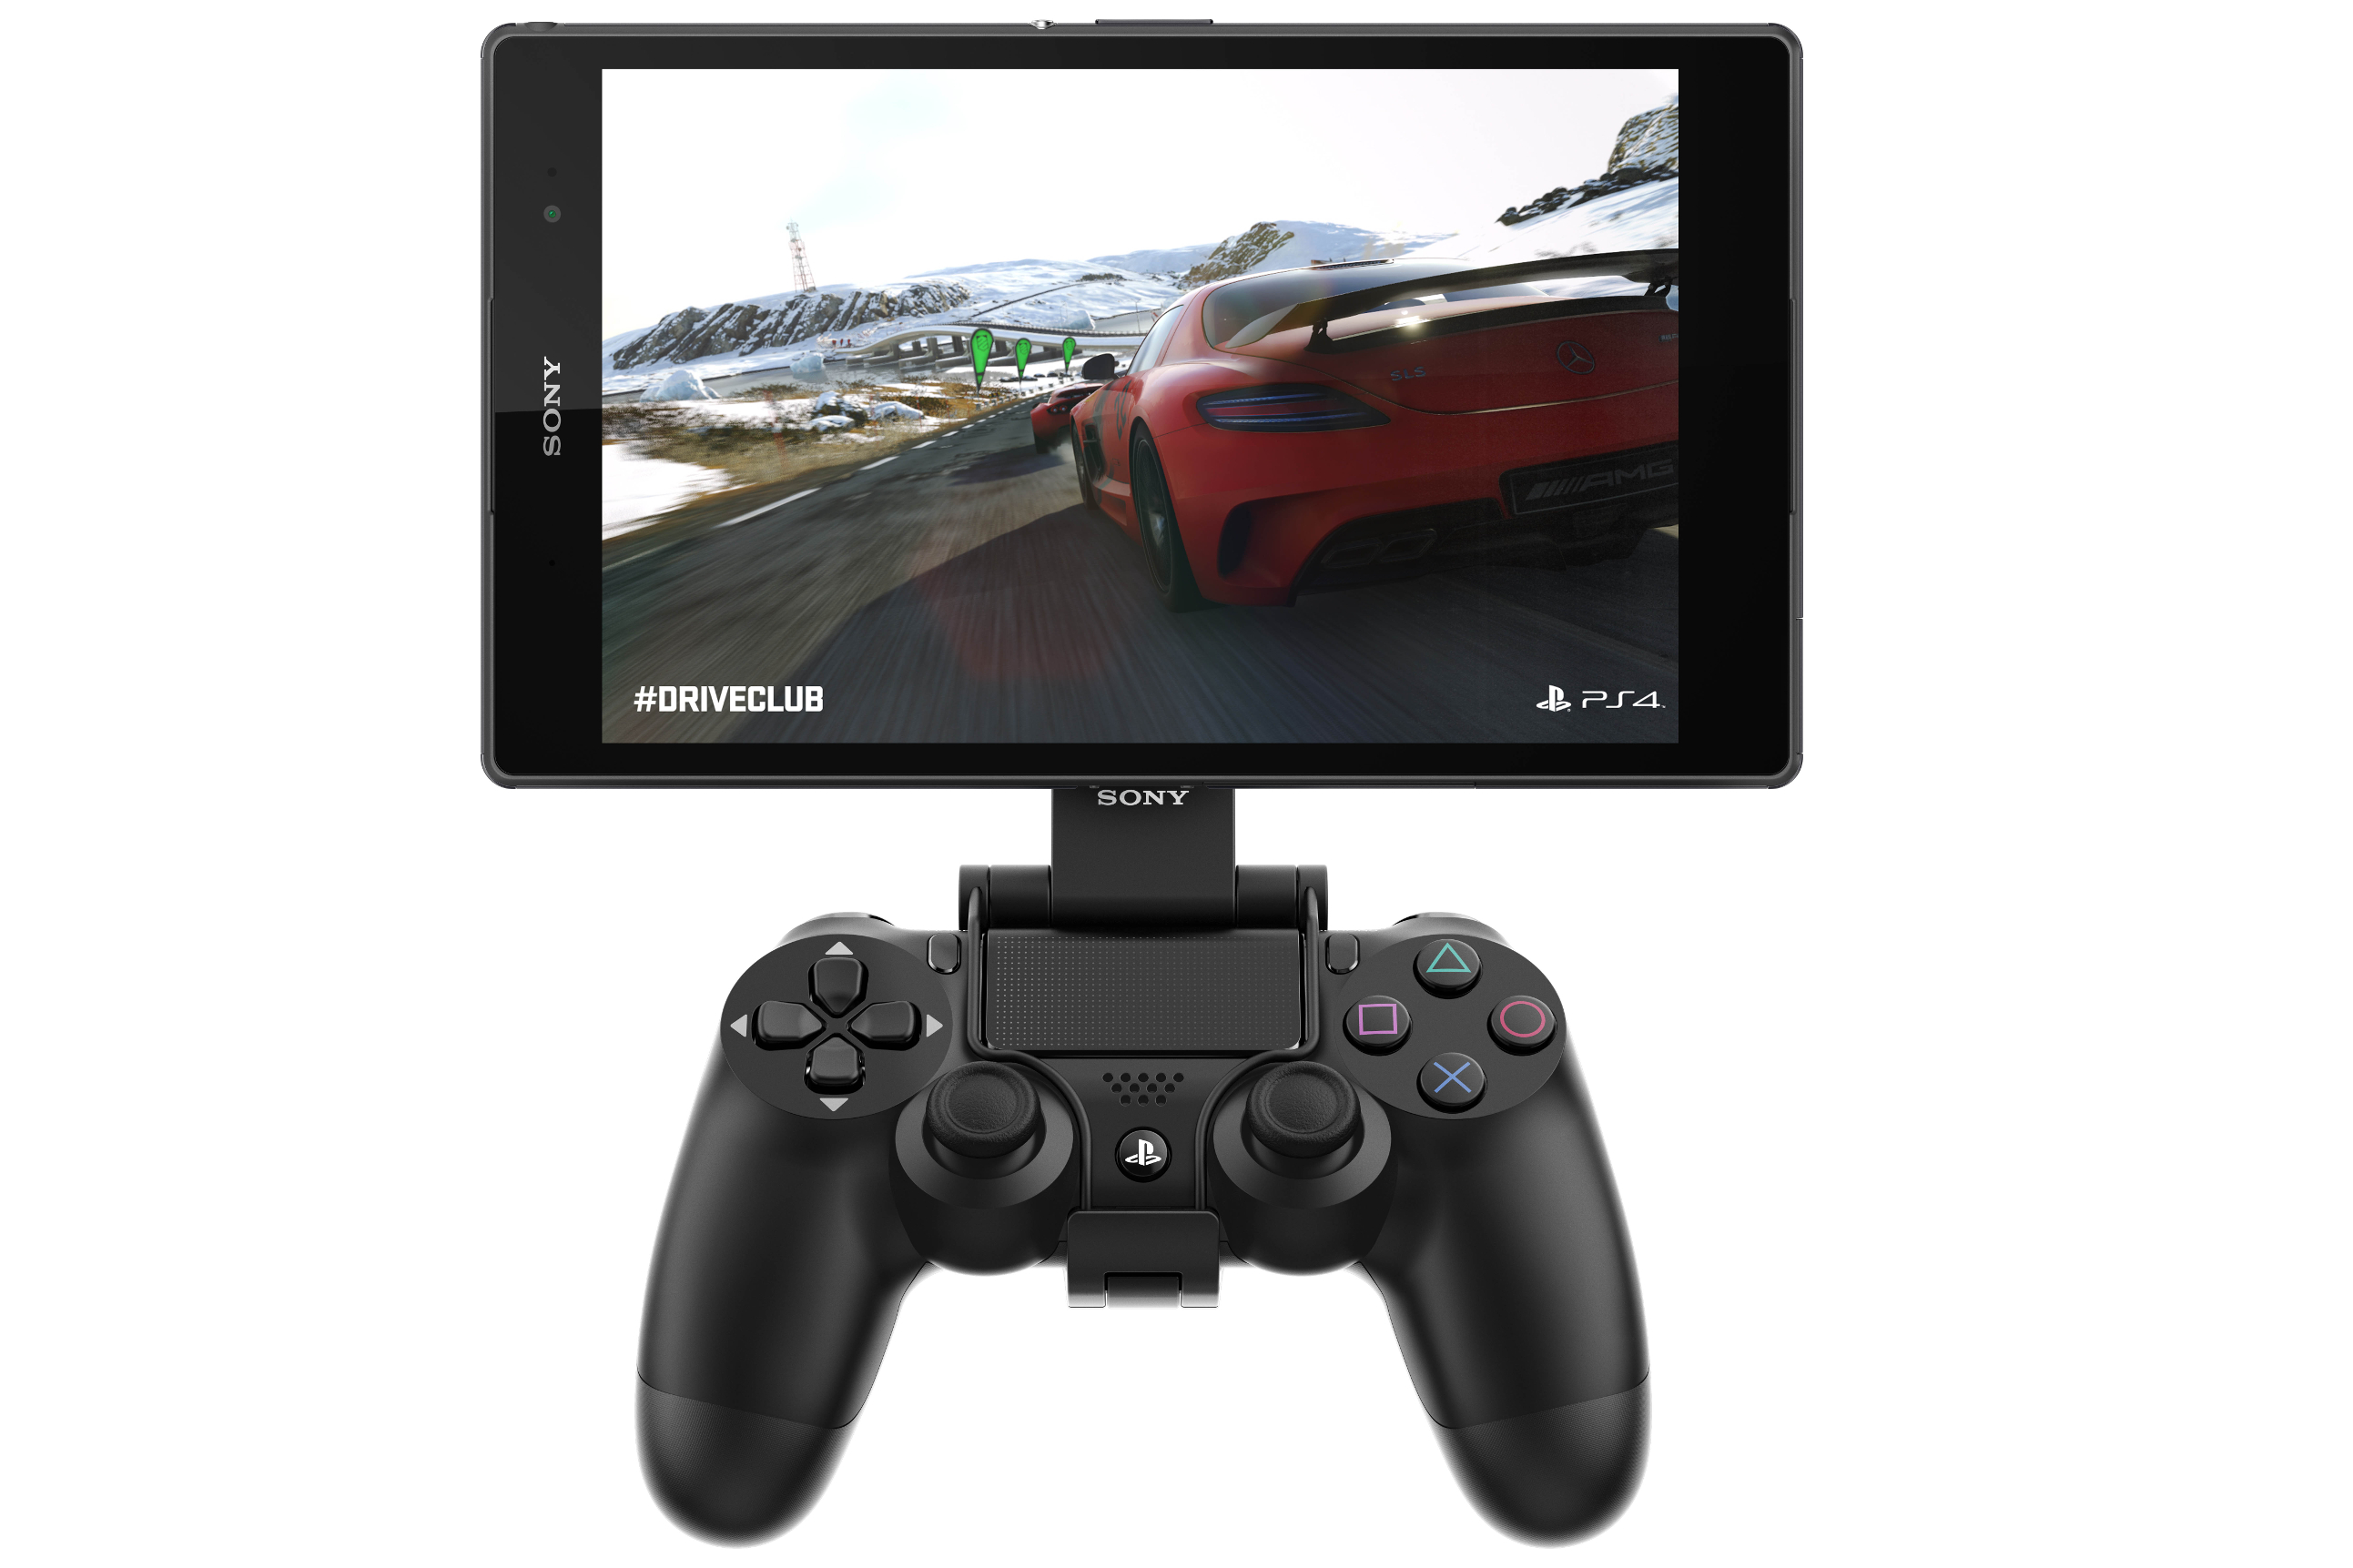 Z3 tablet Compact with PS4 controller